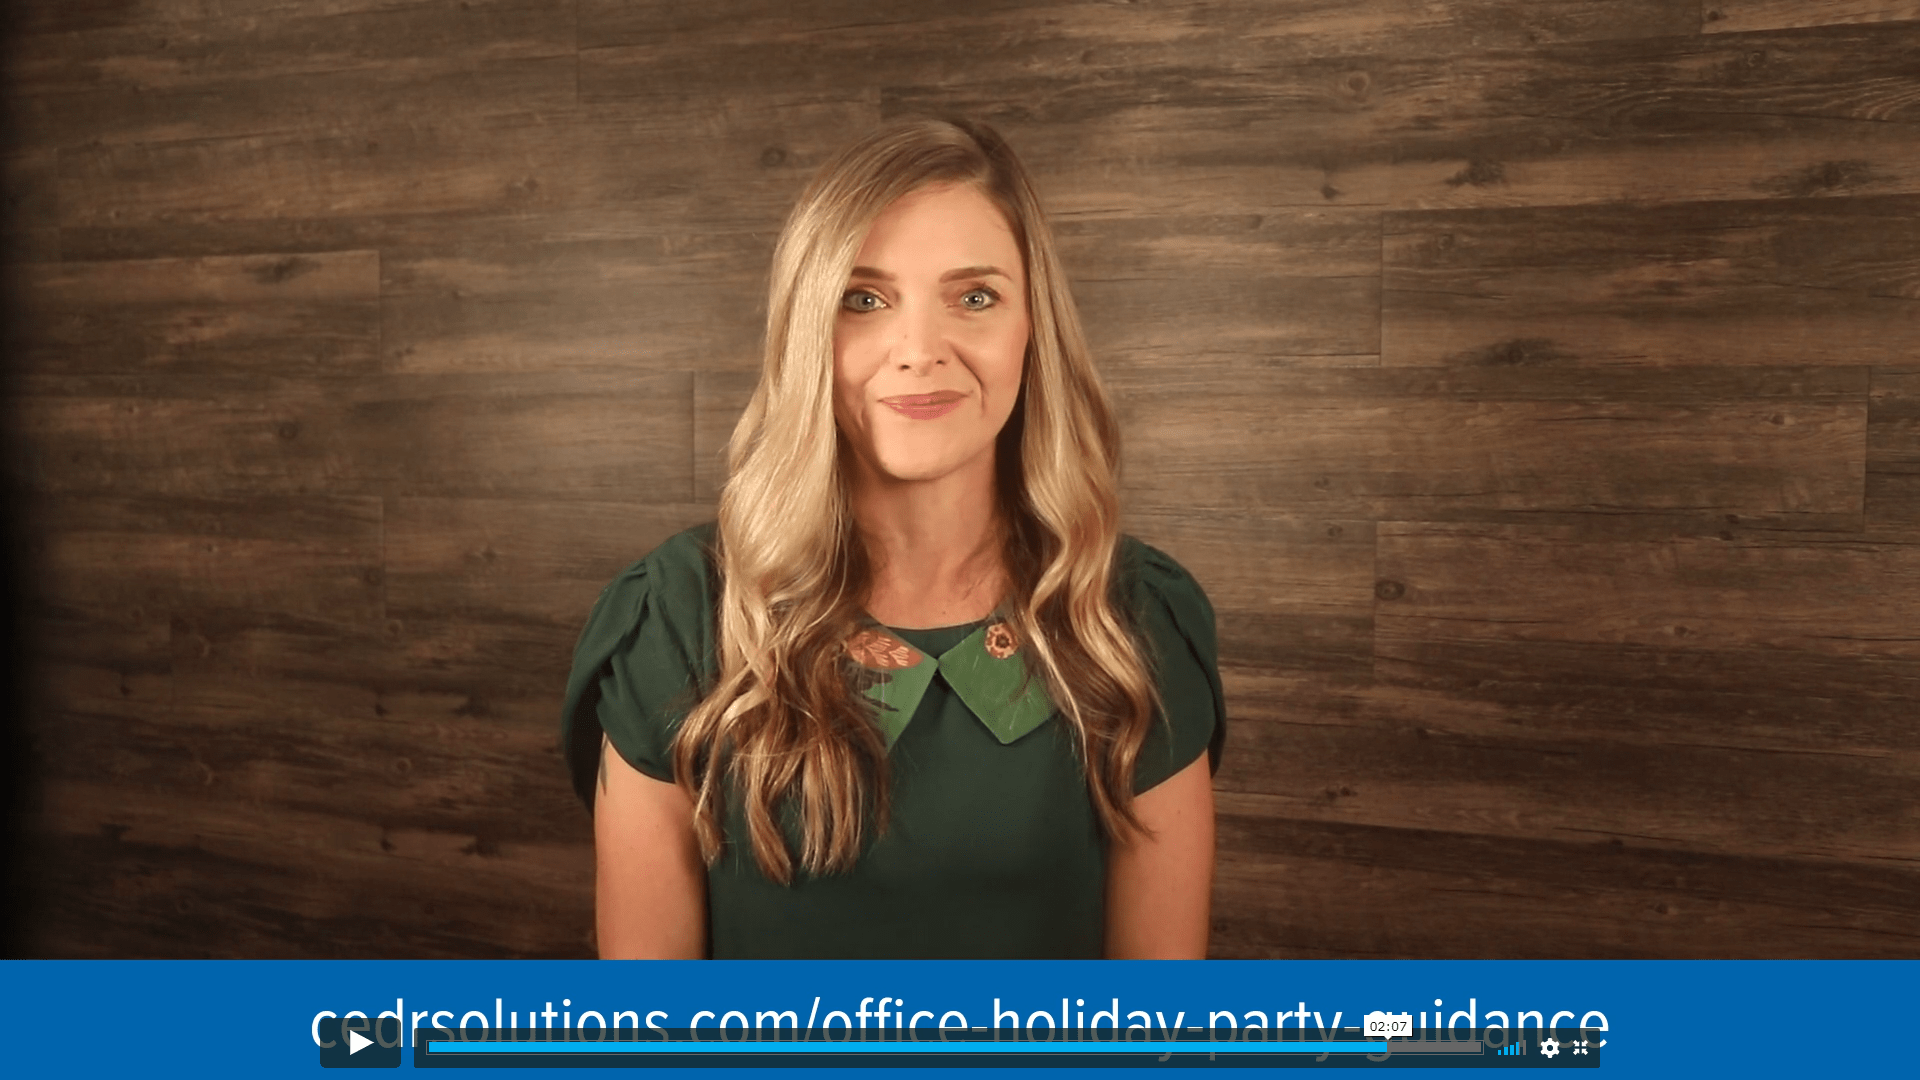 CEDR Solution Center Advisor Tiana Starke offer holiday party guidance